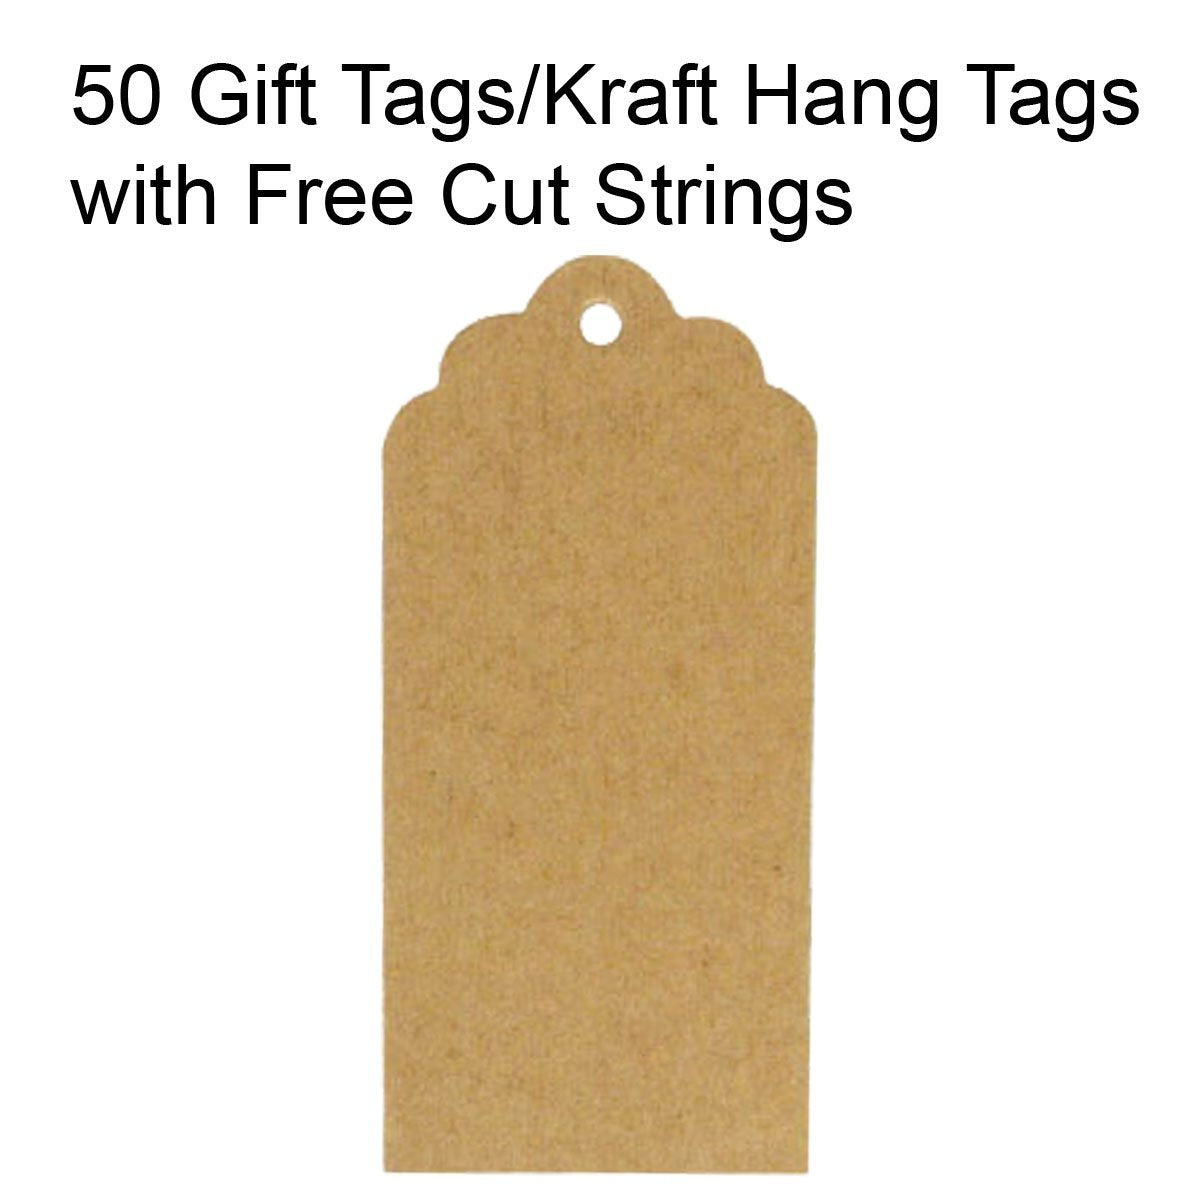 Wrapables 50 Scalloped Gift Tags/Kraft Hang Tags with Free Cut Strings & Set of 3 Washi Tape